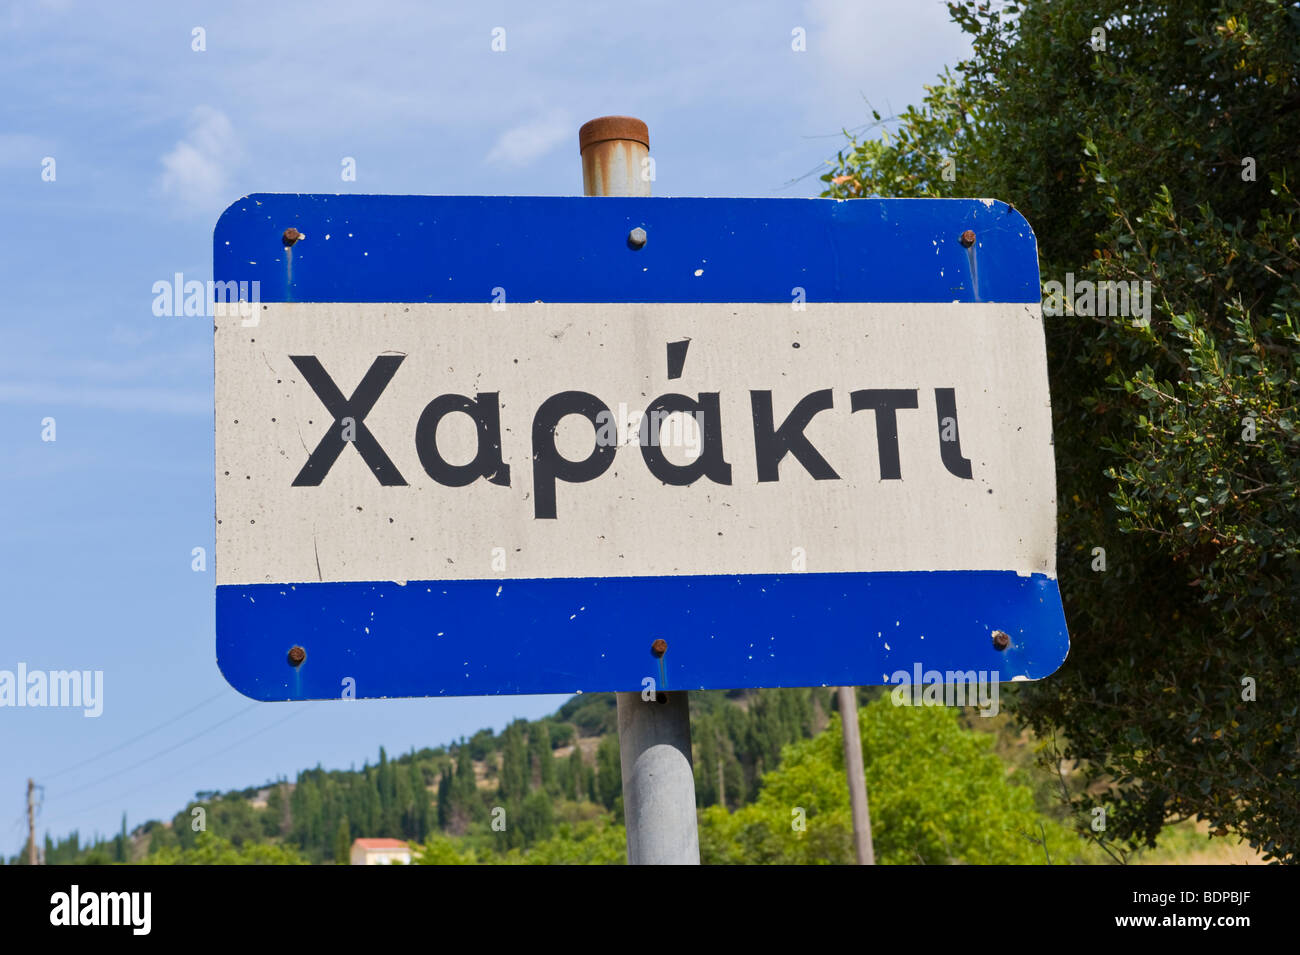 Greek Language Road Sign For Village Of Harakti On The. Lung Point Sign Signs Of Stroke. Organ Signs. Diabetes Insipidus Signs. Heart Disease Signs Of Stroke